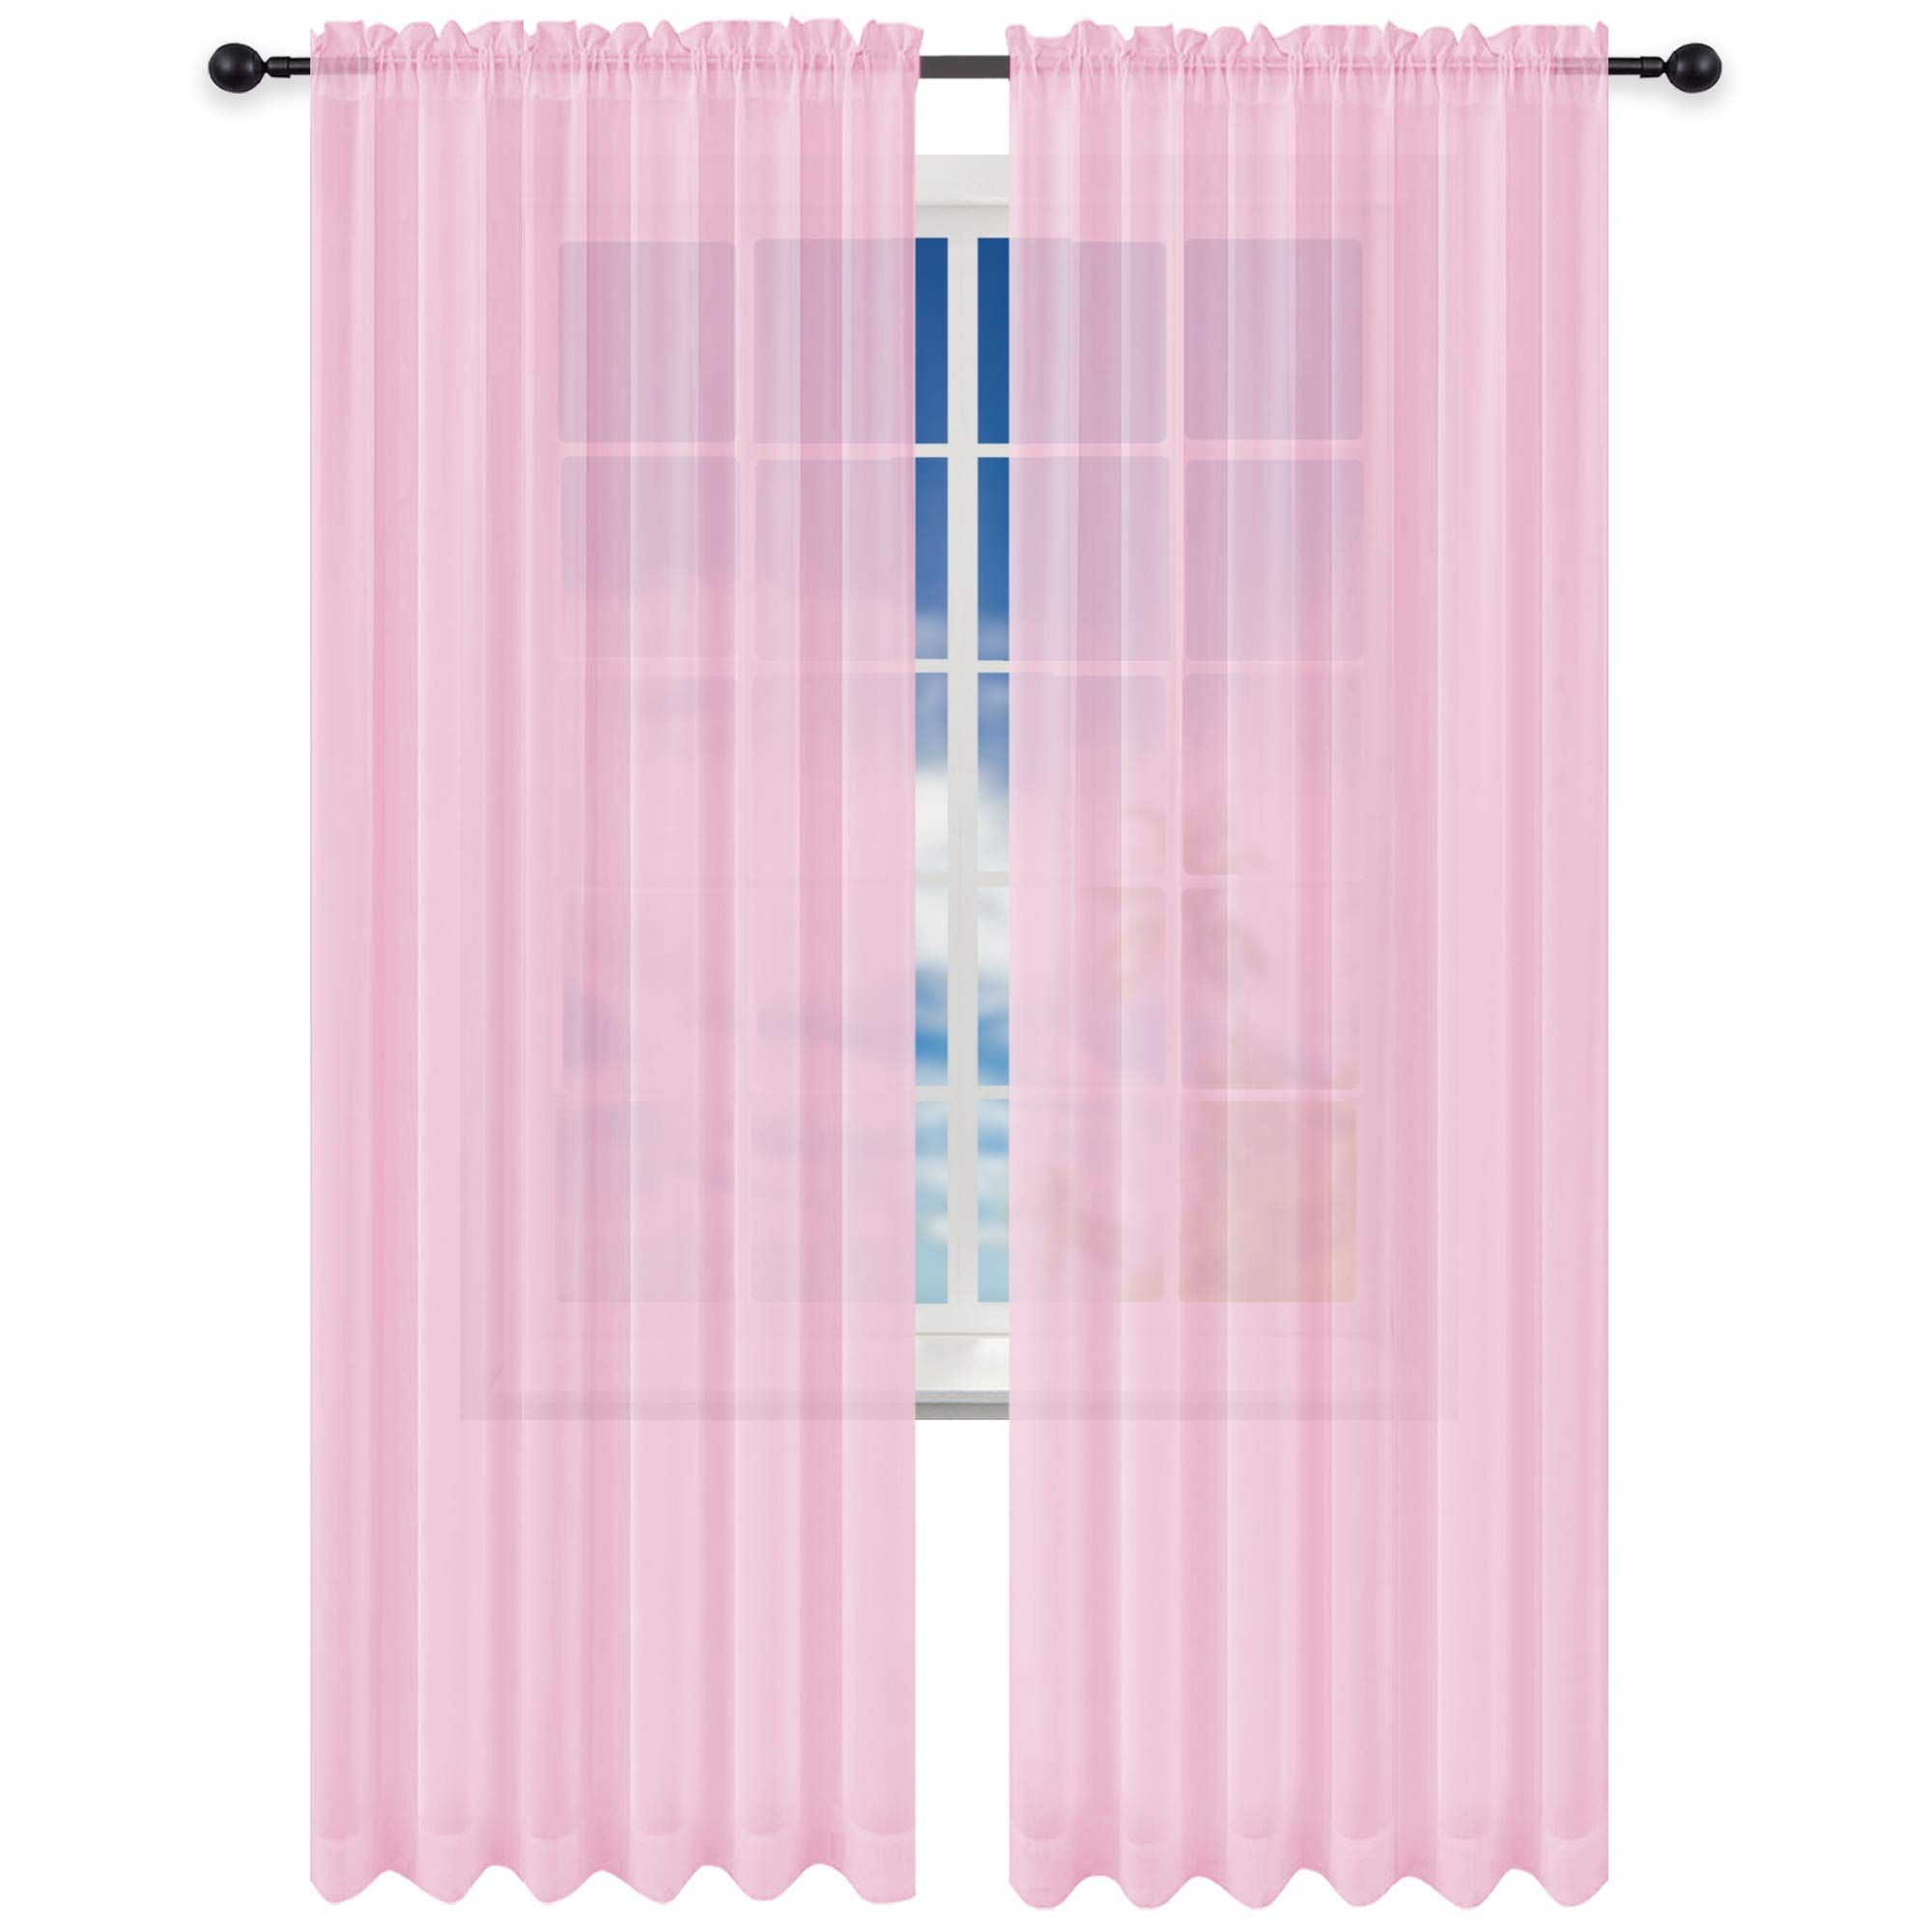 Keqiaosuocai 2 Panels Girls Room Baby Pink Sheer Curtains Panels